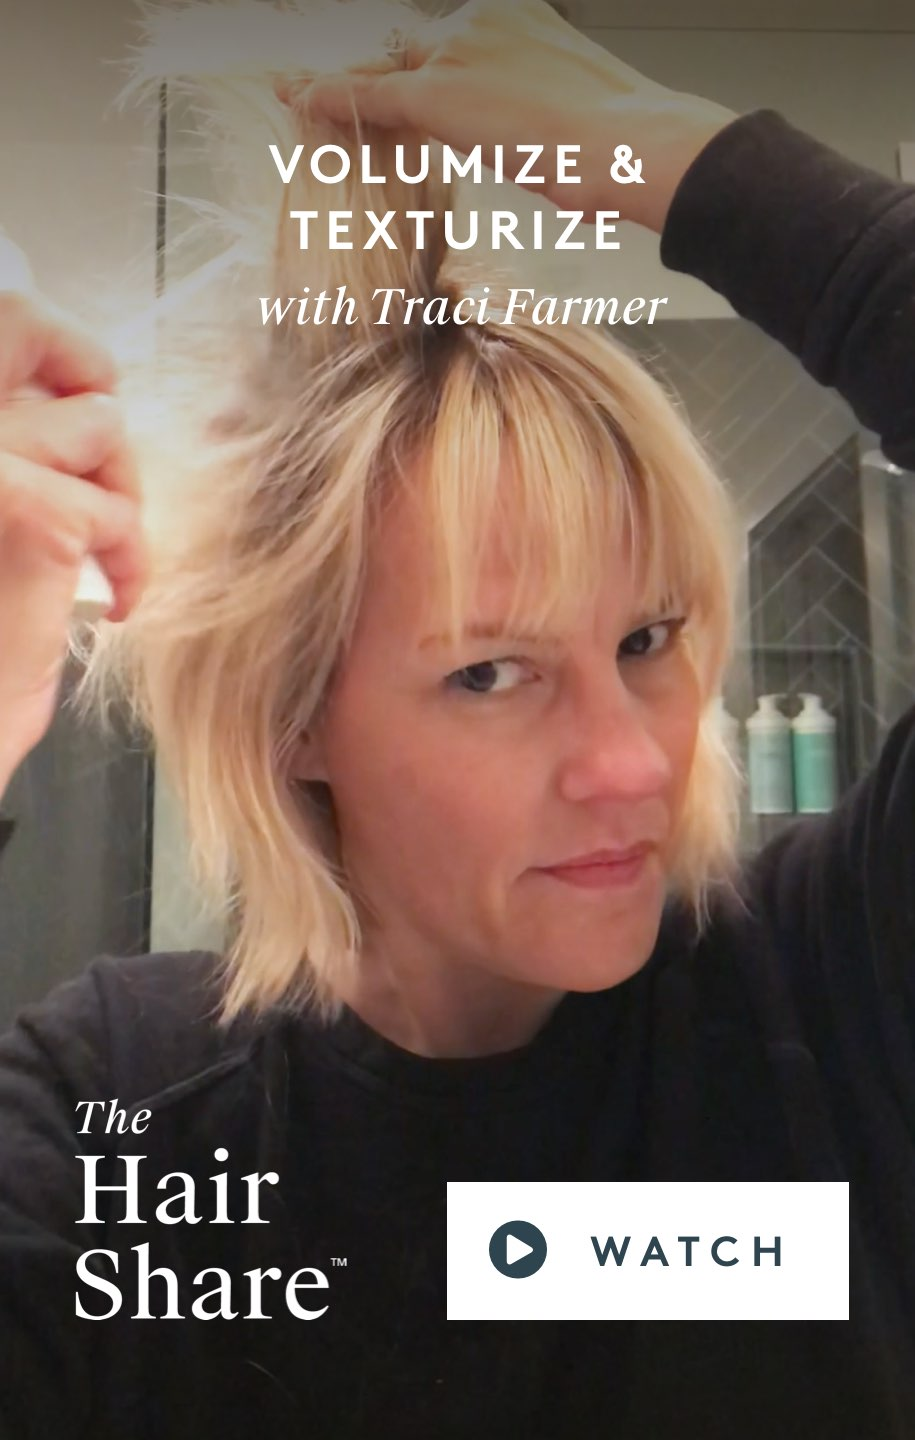 Volumize & Texturize with Traci Farmer